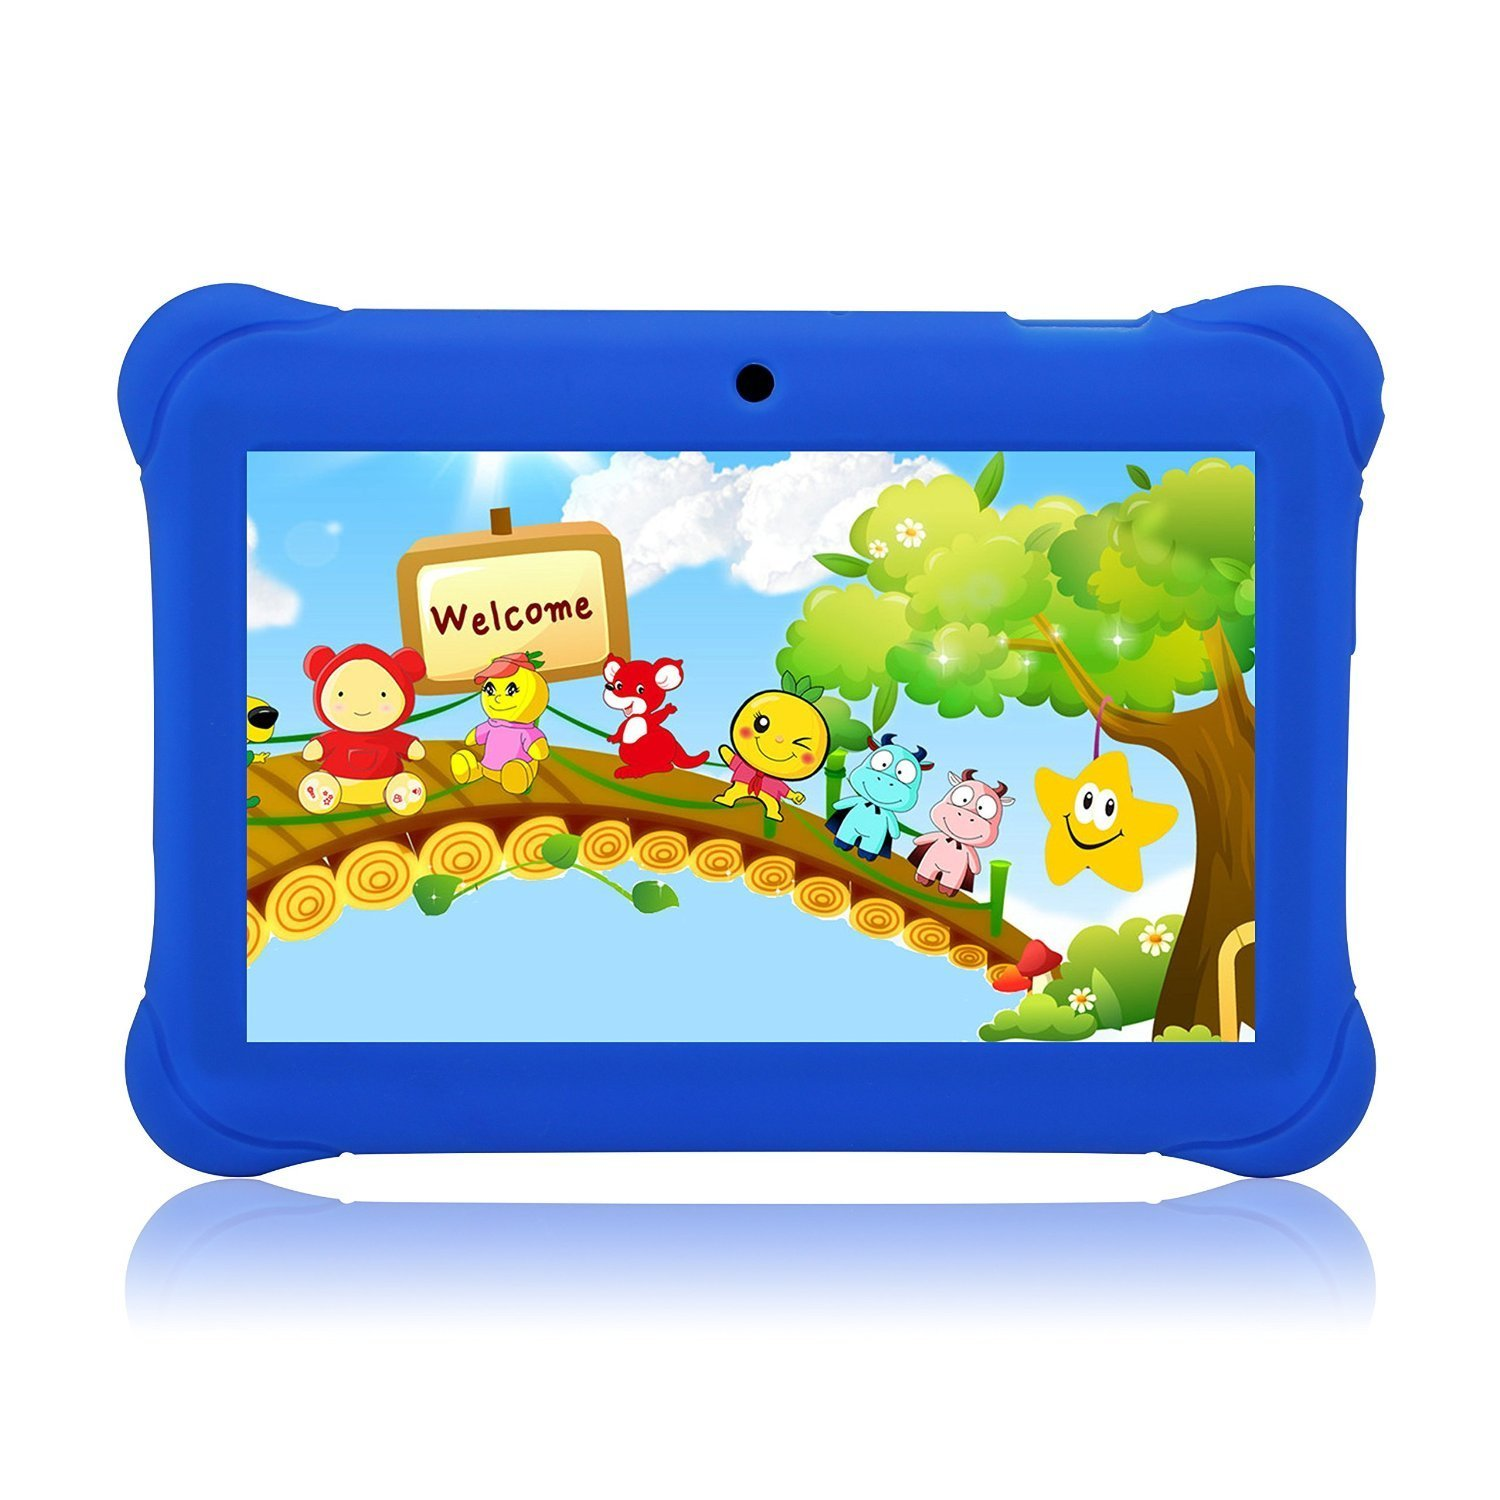 Tagital 7 T7K Quad Core Android Kids Tablet, with Wifi and Camera and Games, HD Kids Edition with Kid Mode Pre-Installed (Blue)